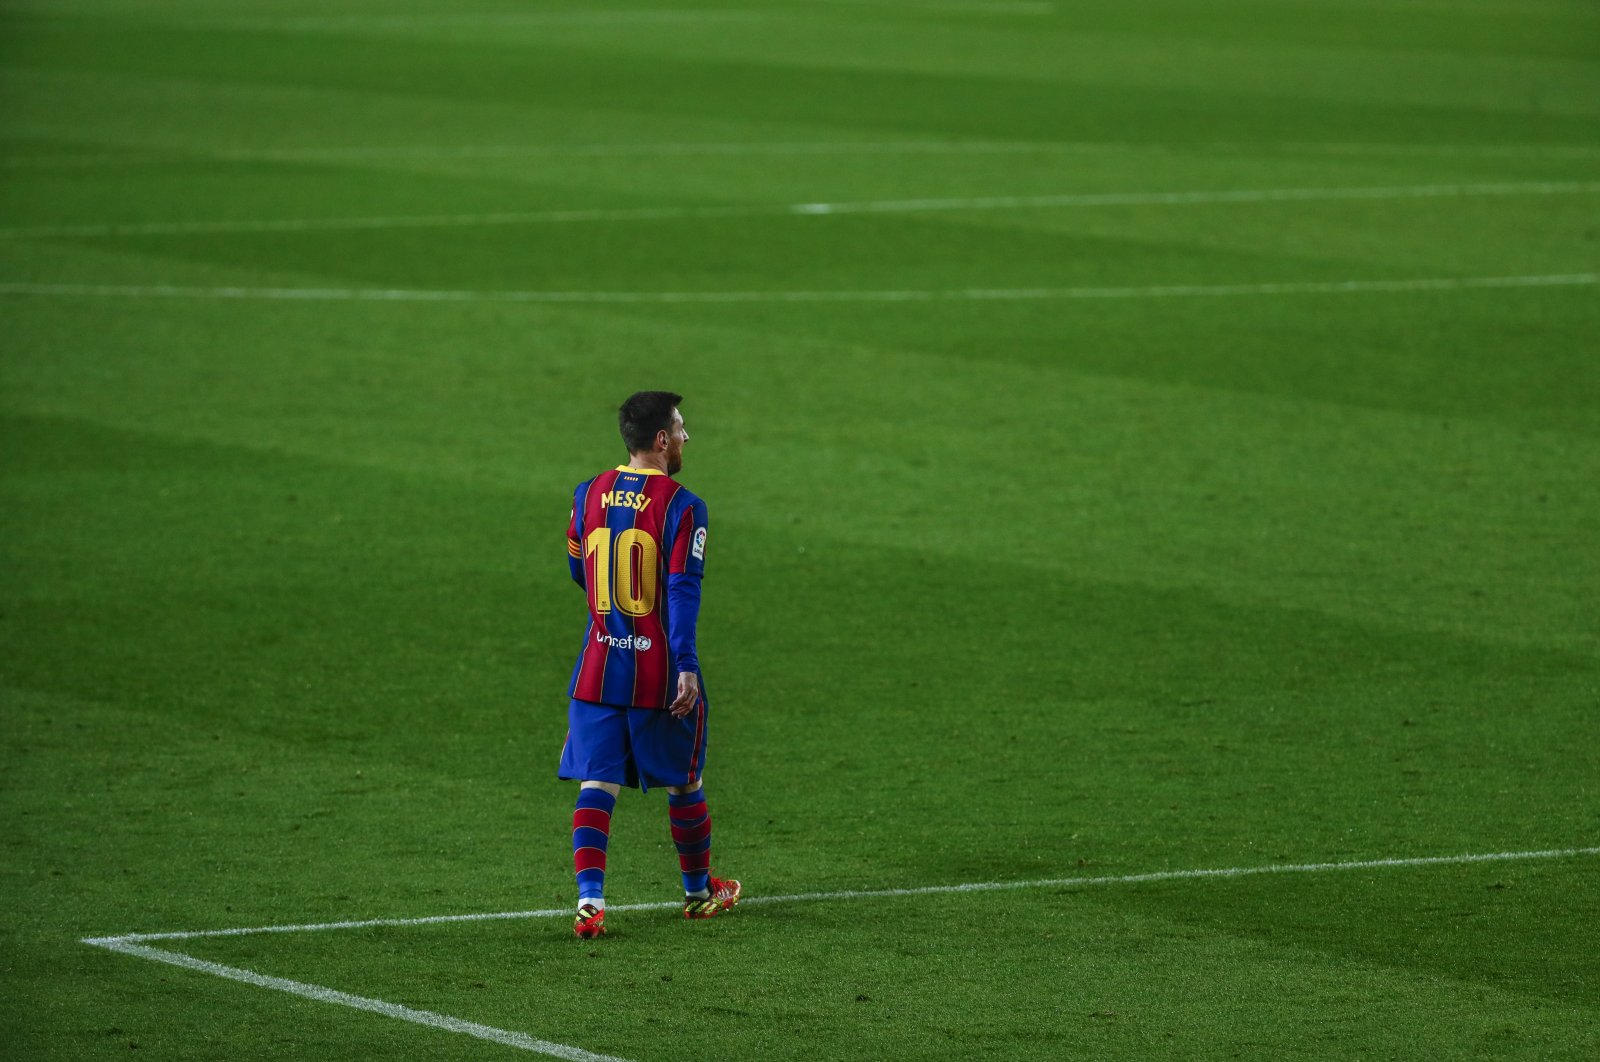 Barcelona's Lionel Messi walks on the pitch,  during the Spanish La Liga football match between FC Barcelona and Huesca at the Camp Nou stadium in Barcelona, Spain, March 15, 2021. (AP Photo)